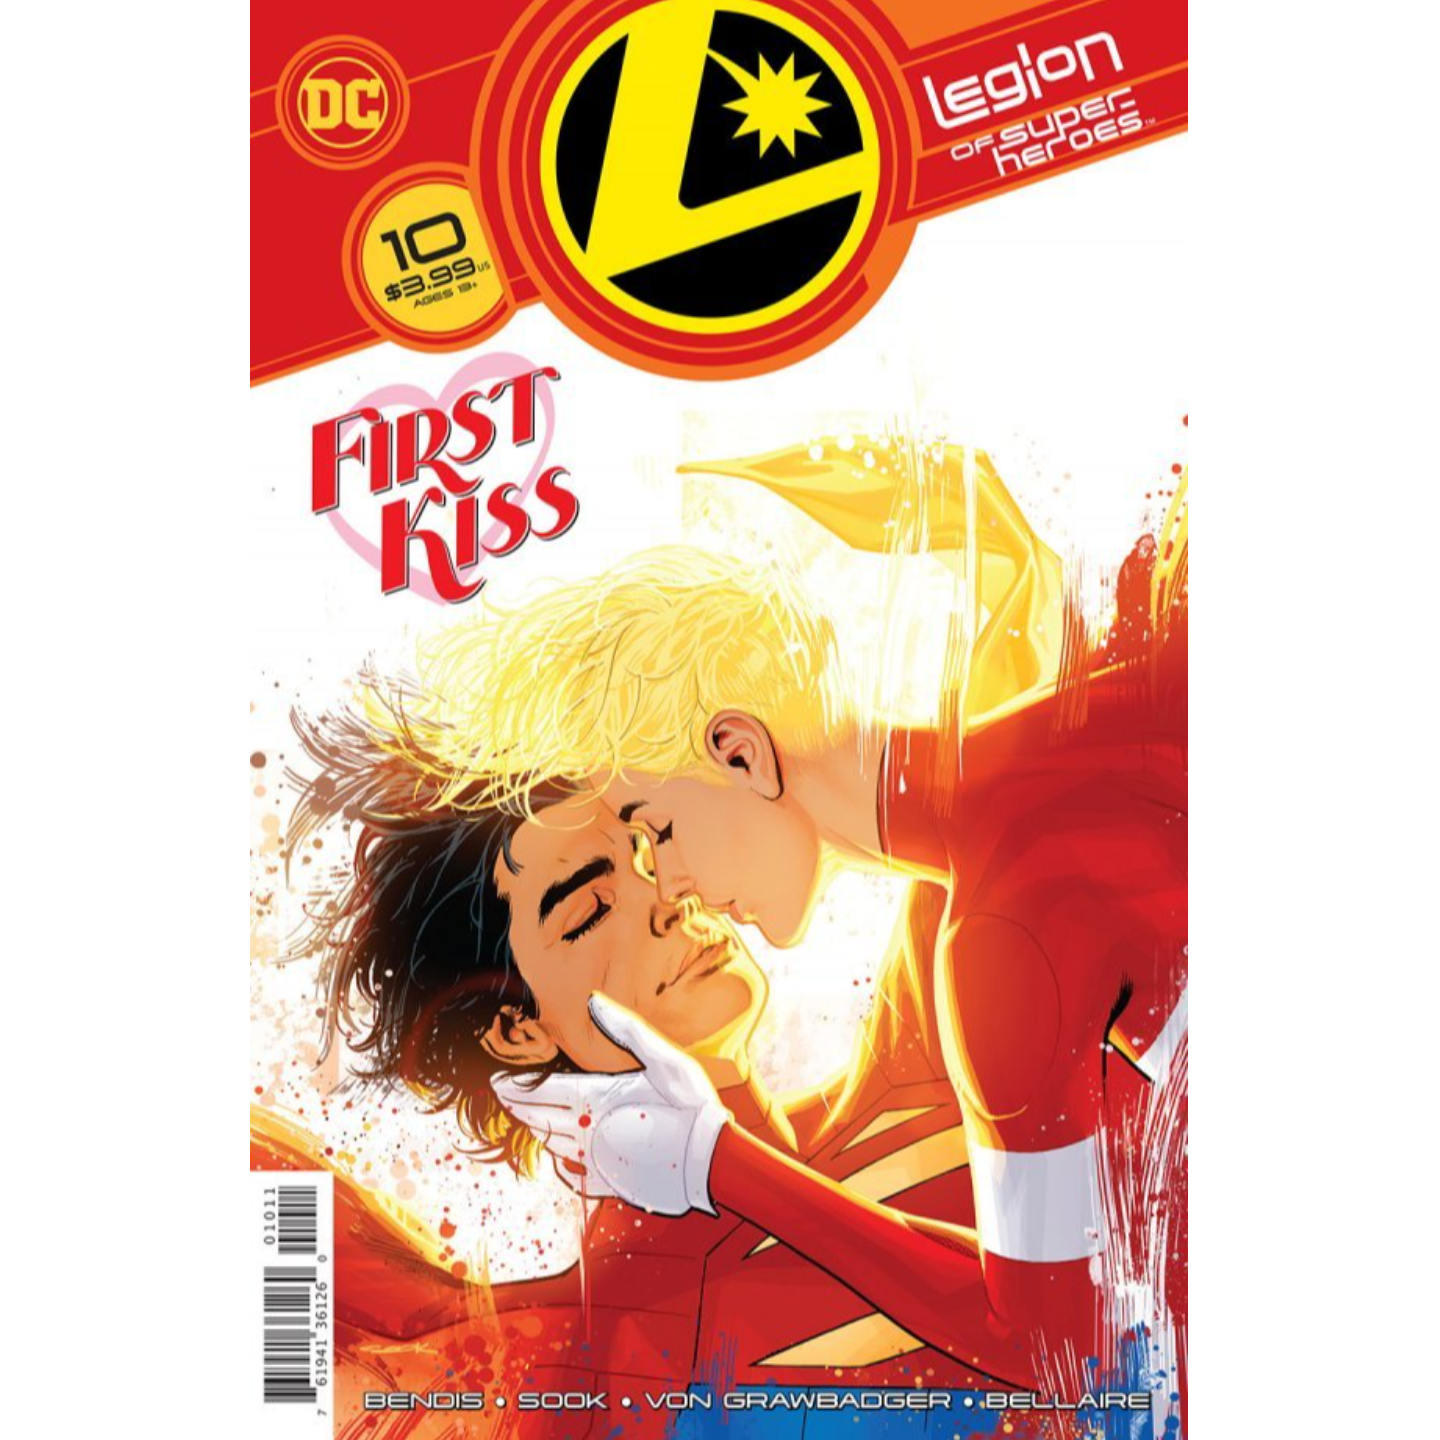 LEGION OF SUPER-HEROES #10 CVR A RYAN SOOK